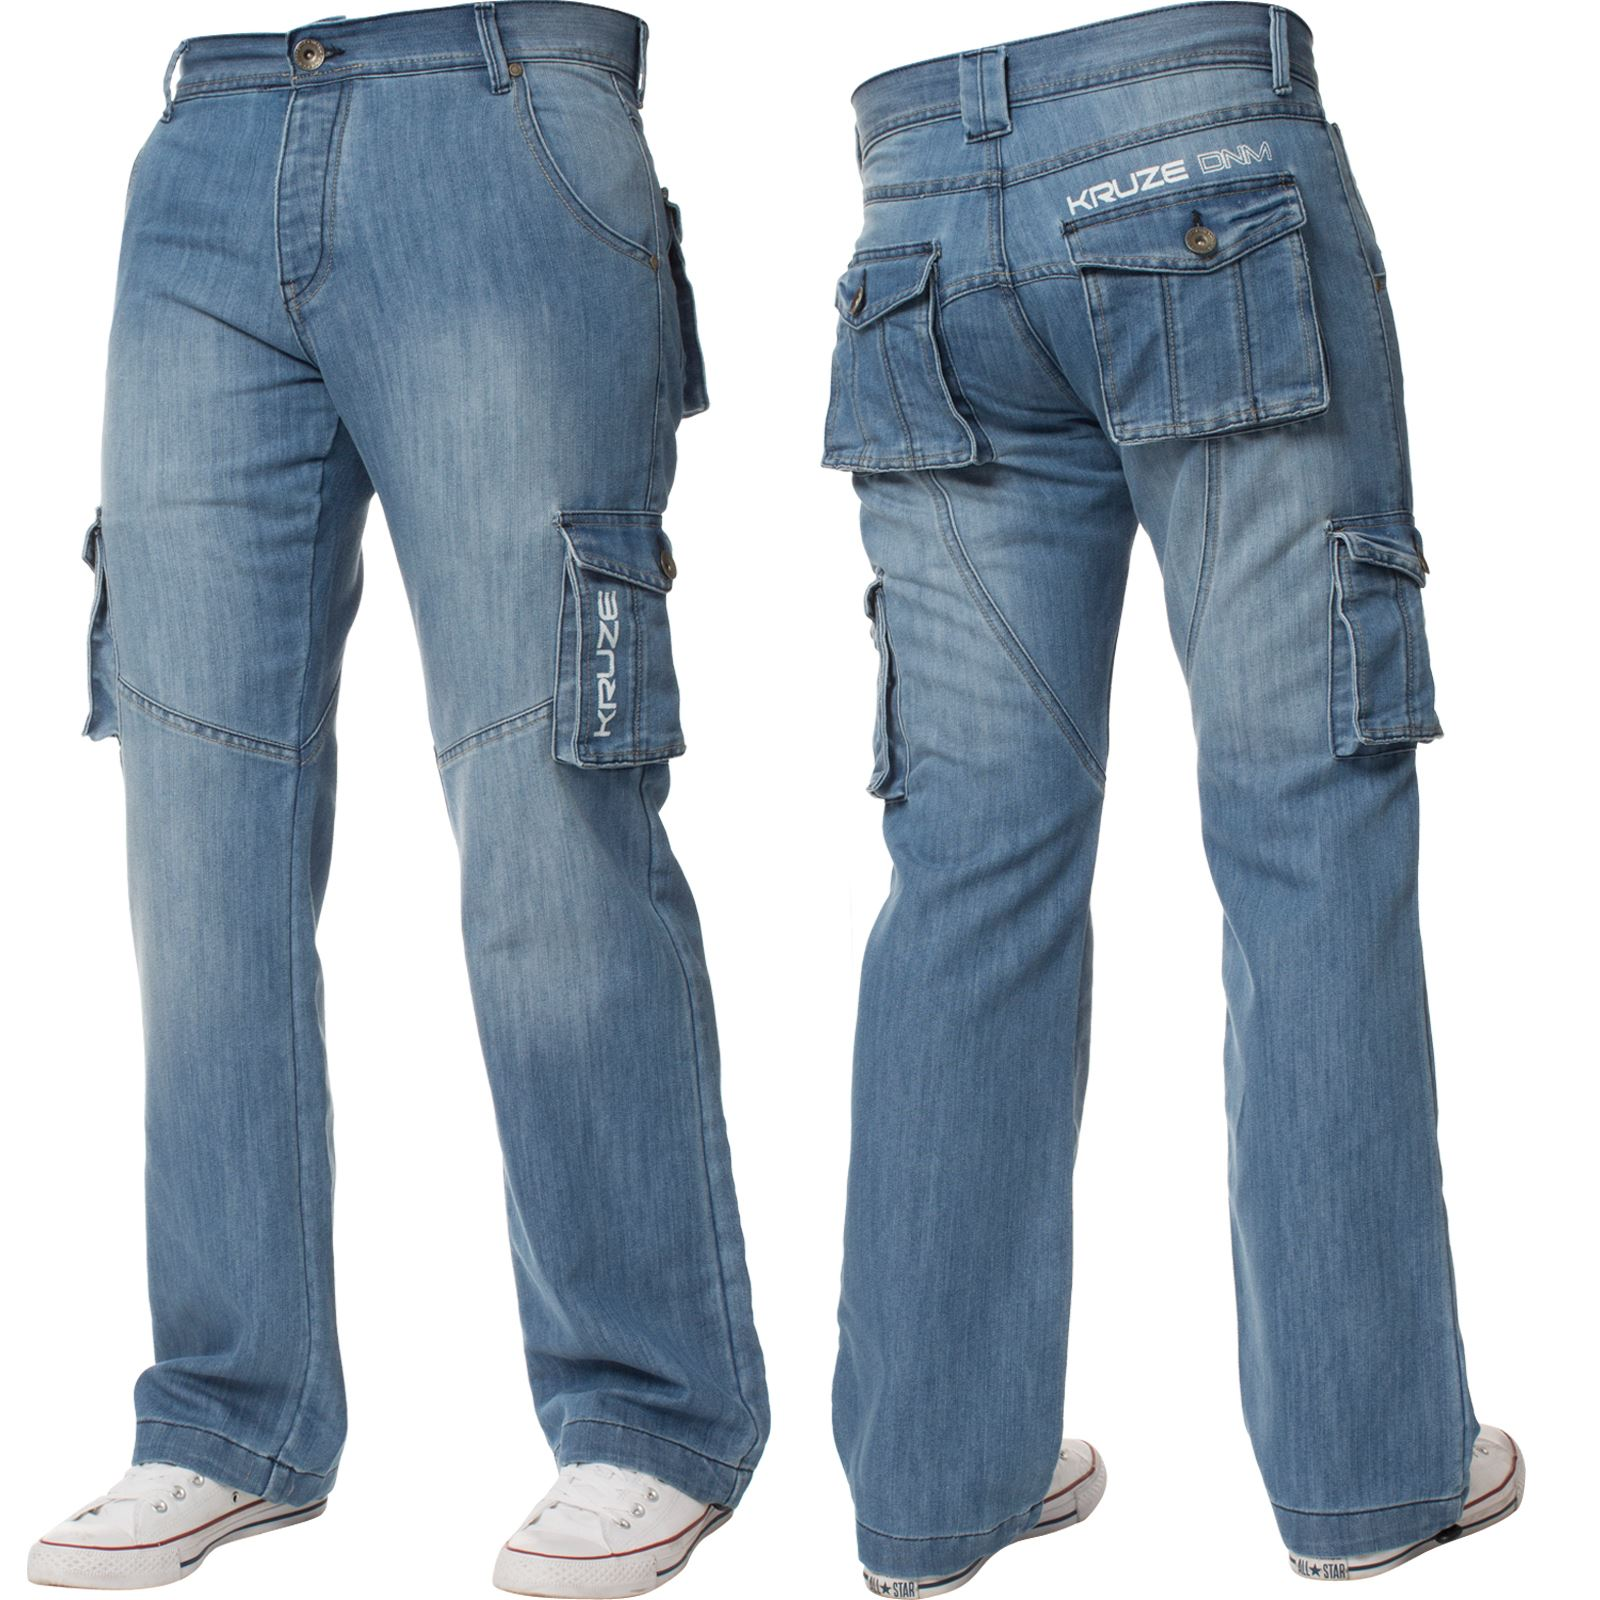 Mens-Cargo-Jeans-Combat-Trousers-Heavy-Duty-Work-Casual-Big-Tall-Denim-Pants thumbnail 75